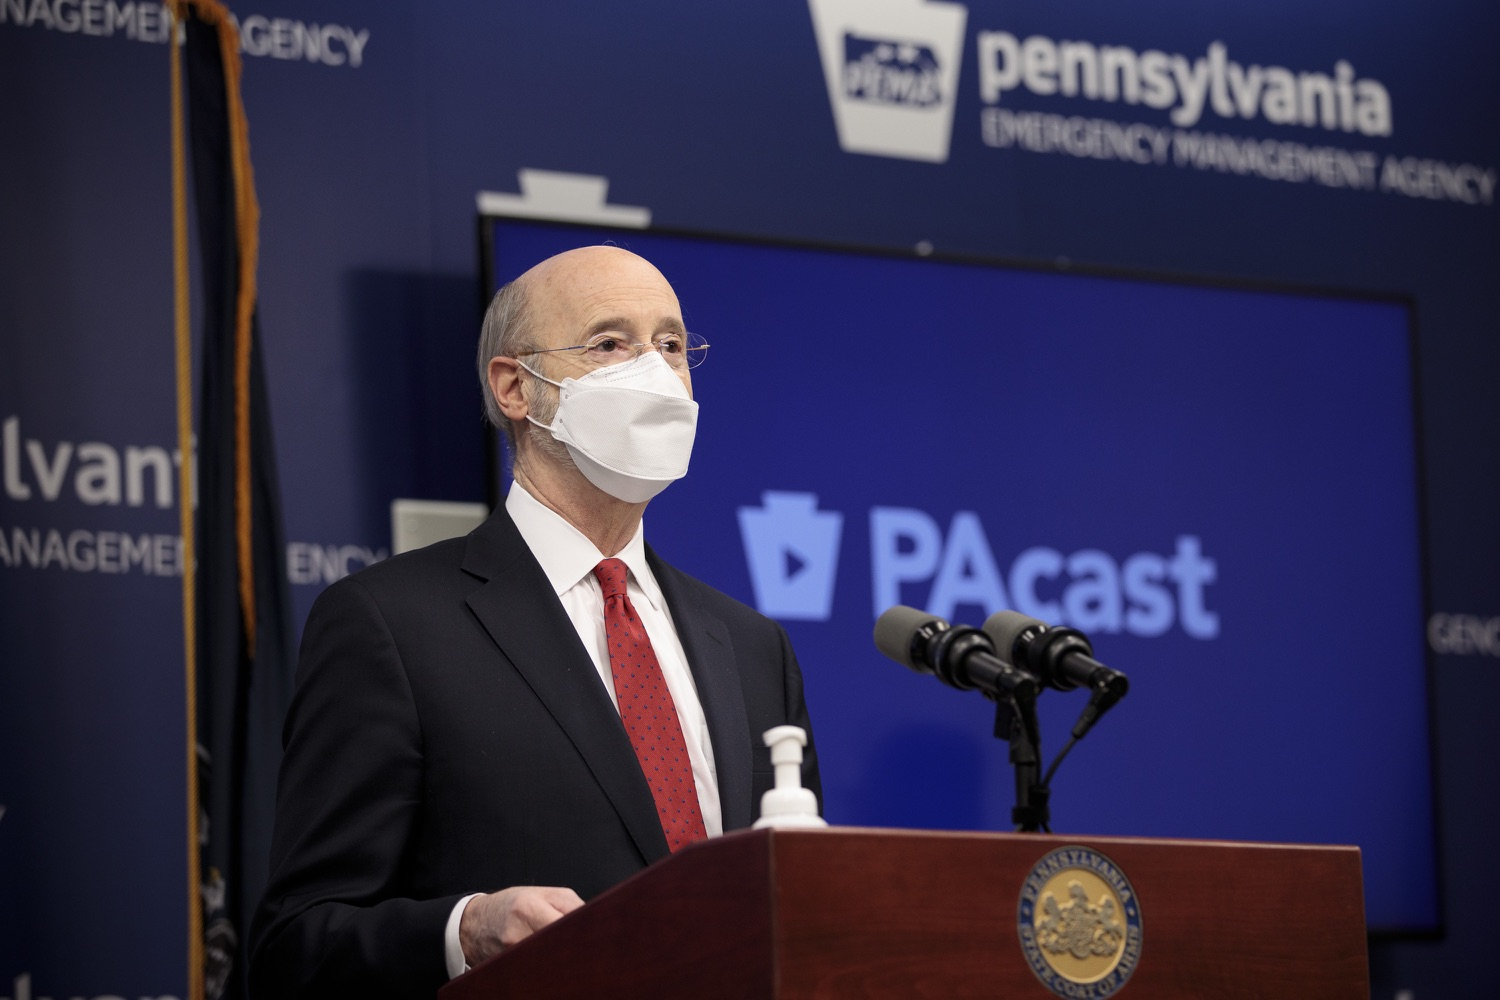 "<a href=""https://filesource.wostreaming.net/commonwealthofpa/photo/18540_gov_backtowork_dz_02.jpg"" target=""_blank"">⇣ Download Photo<br></a>Pennsylvania Governor Tom Wolf speaking at the press conference. The COVID-19 global pandemic has significantly affected Pennsylvania workers, businesses and communities. To bolster economic recovery efforts and position Pennsylvania for economic growth, Governor Tom Wolf today unveiled his Back to Work PA plan.   Harrisburg, PA  February 22, 2021"